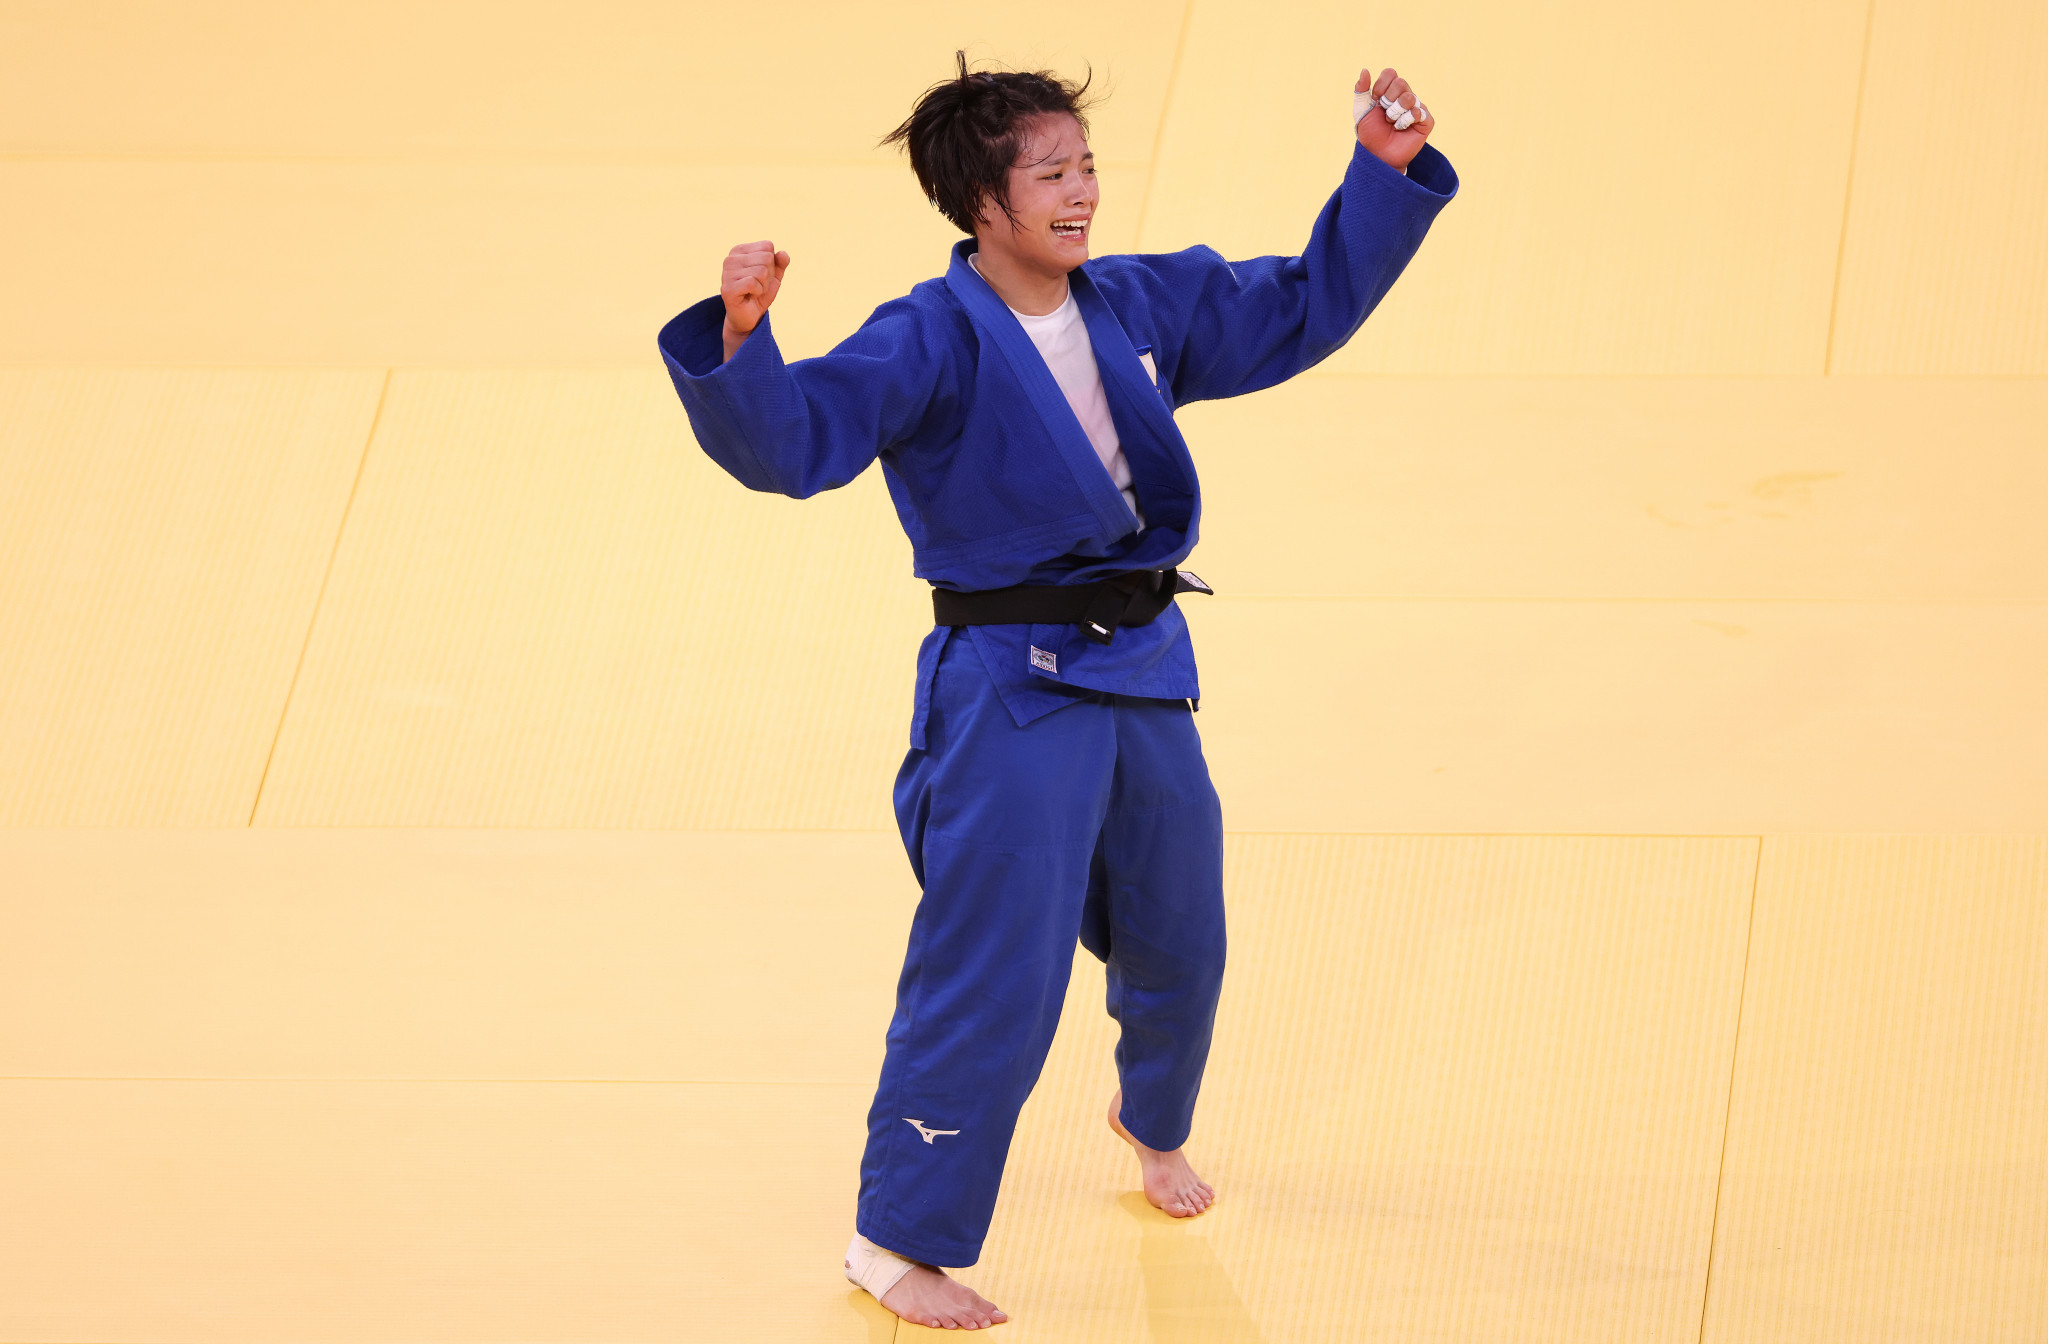 Uta Abe came out on top against  Amandine Buchard in the women's under-52kg final ©Getty Images